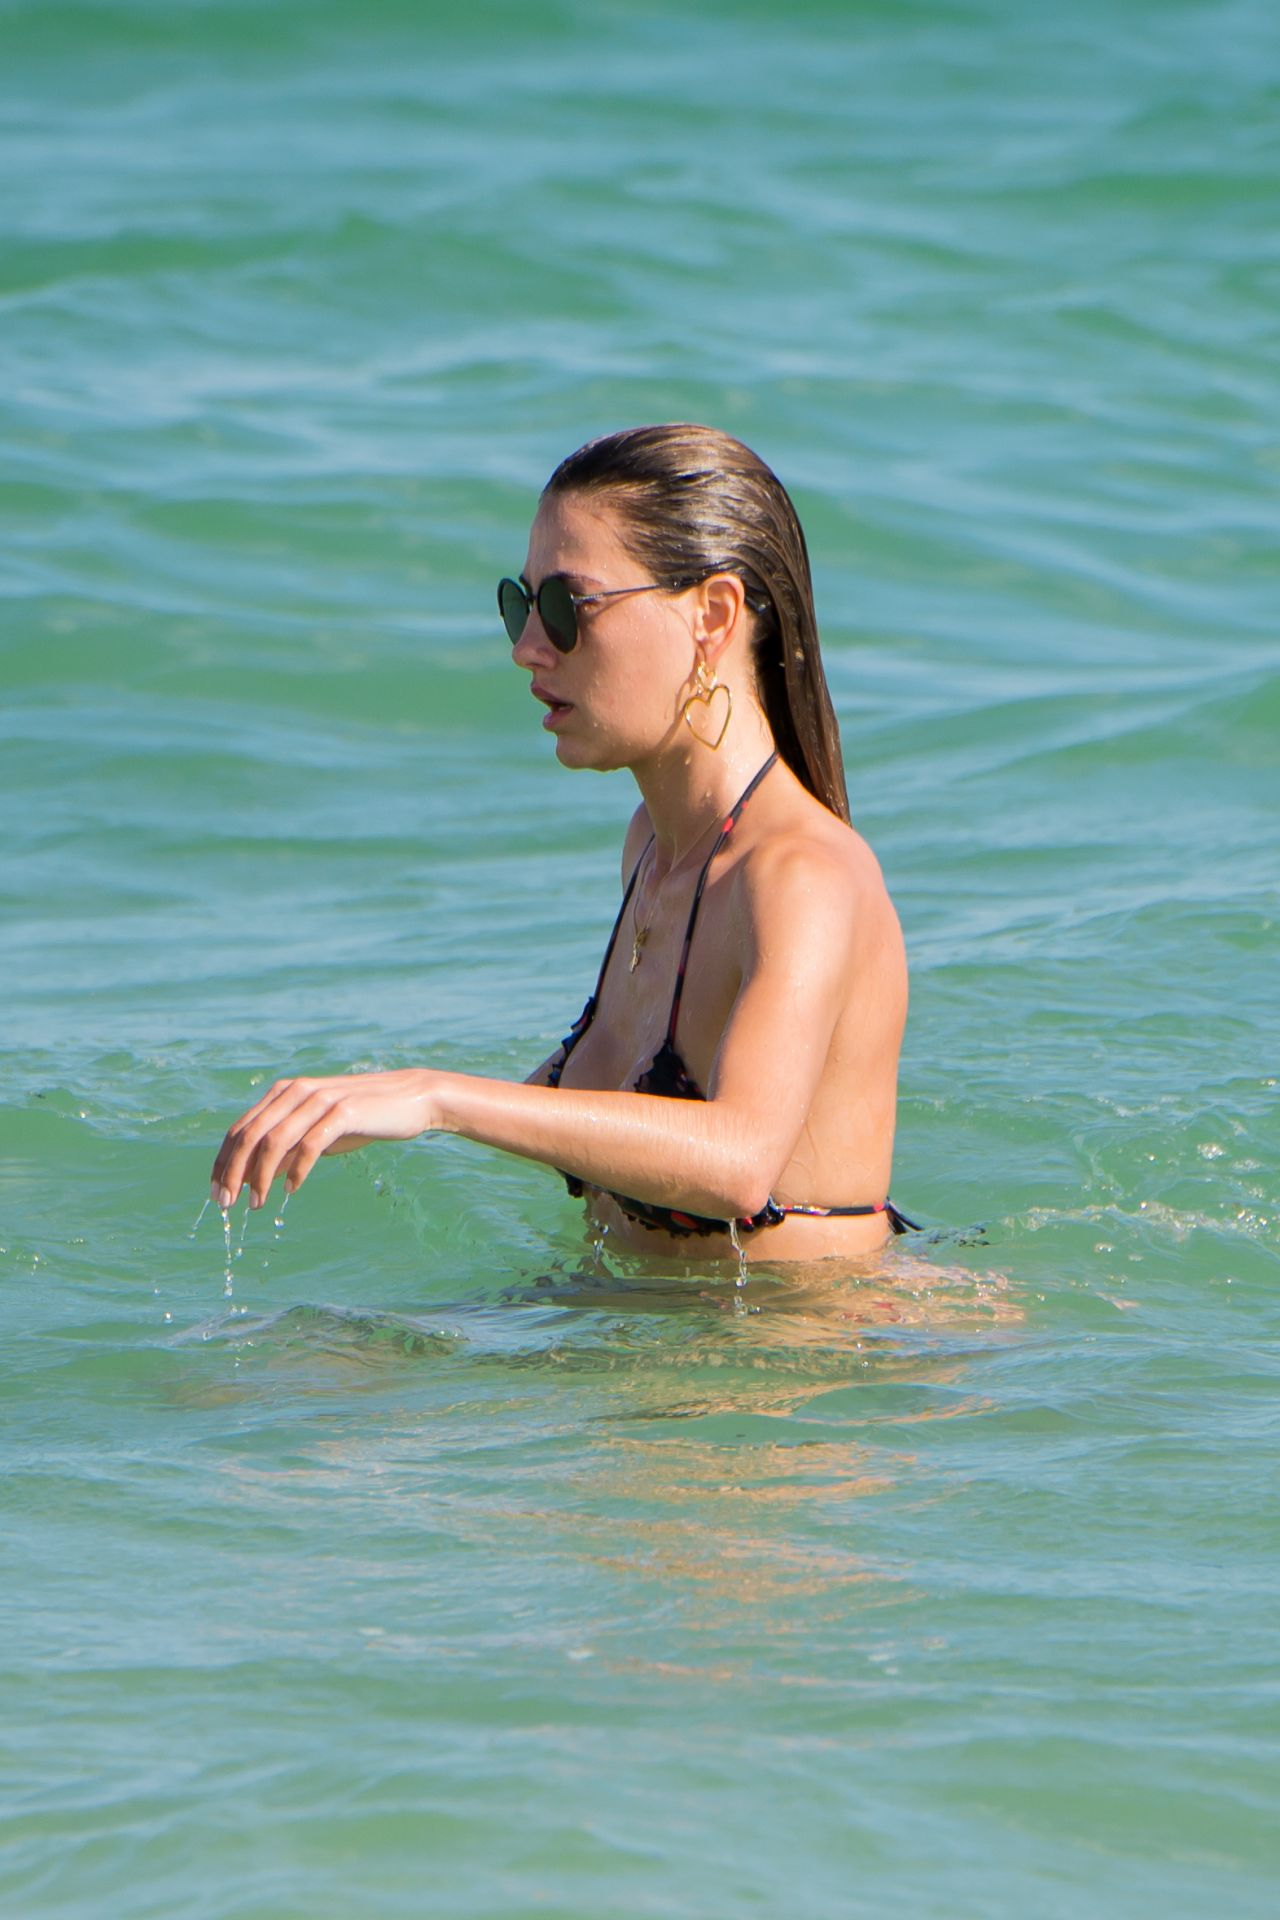 Alina Baikova in Bikini on the beach in Miami Pic 11 of 35